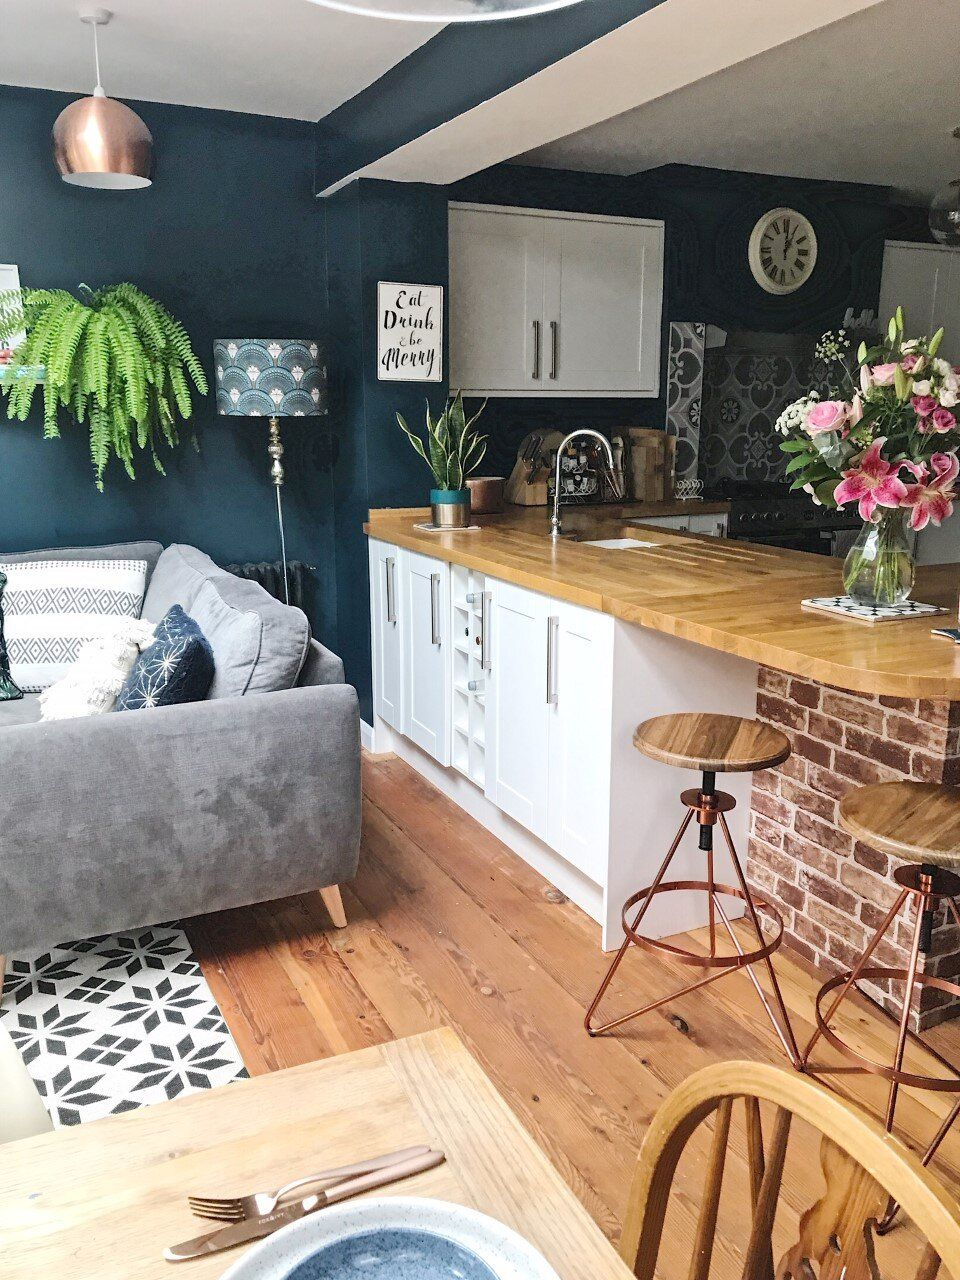 How to Use Green in Interior Design for a Calm Home